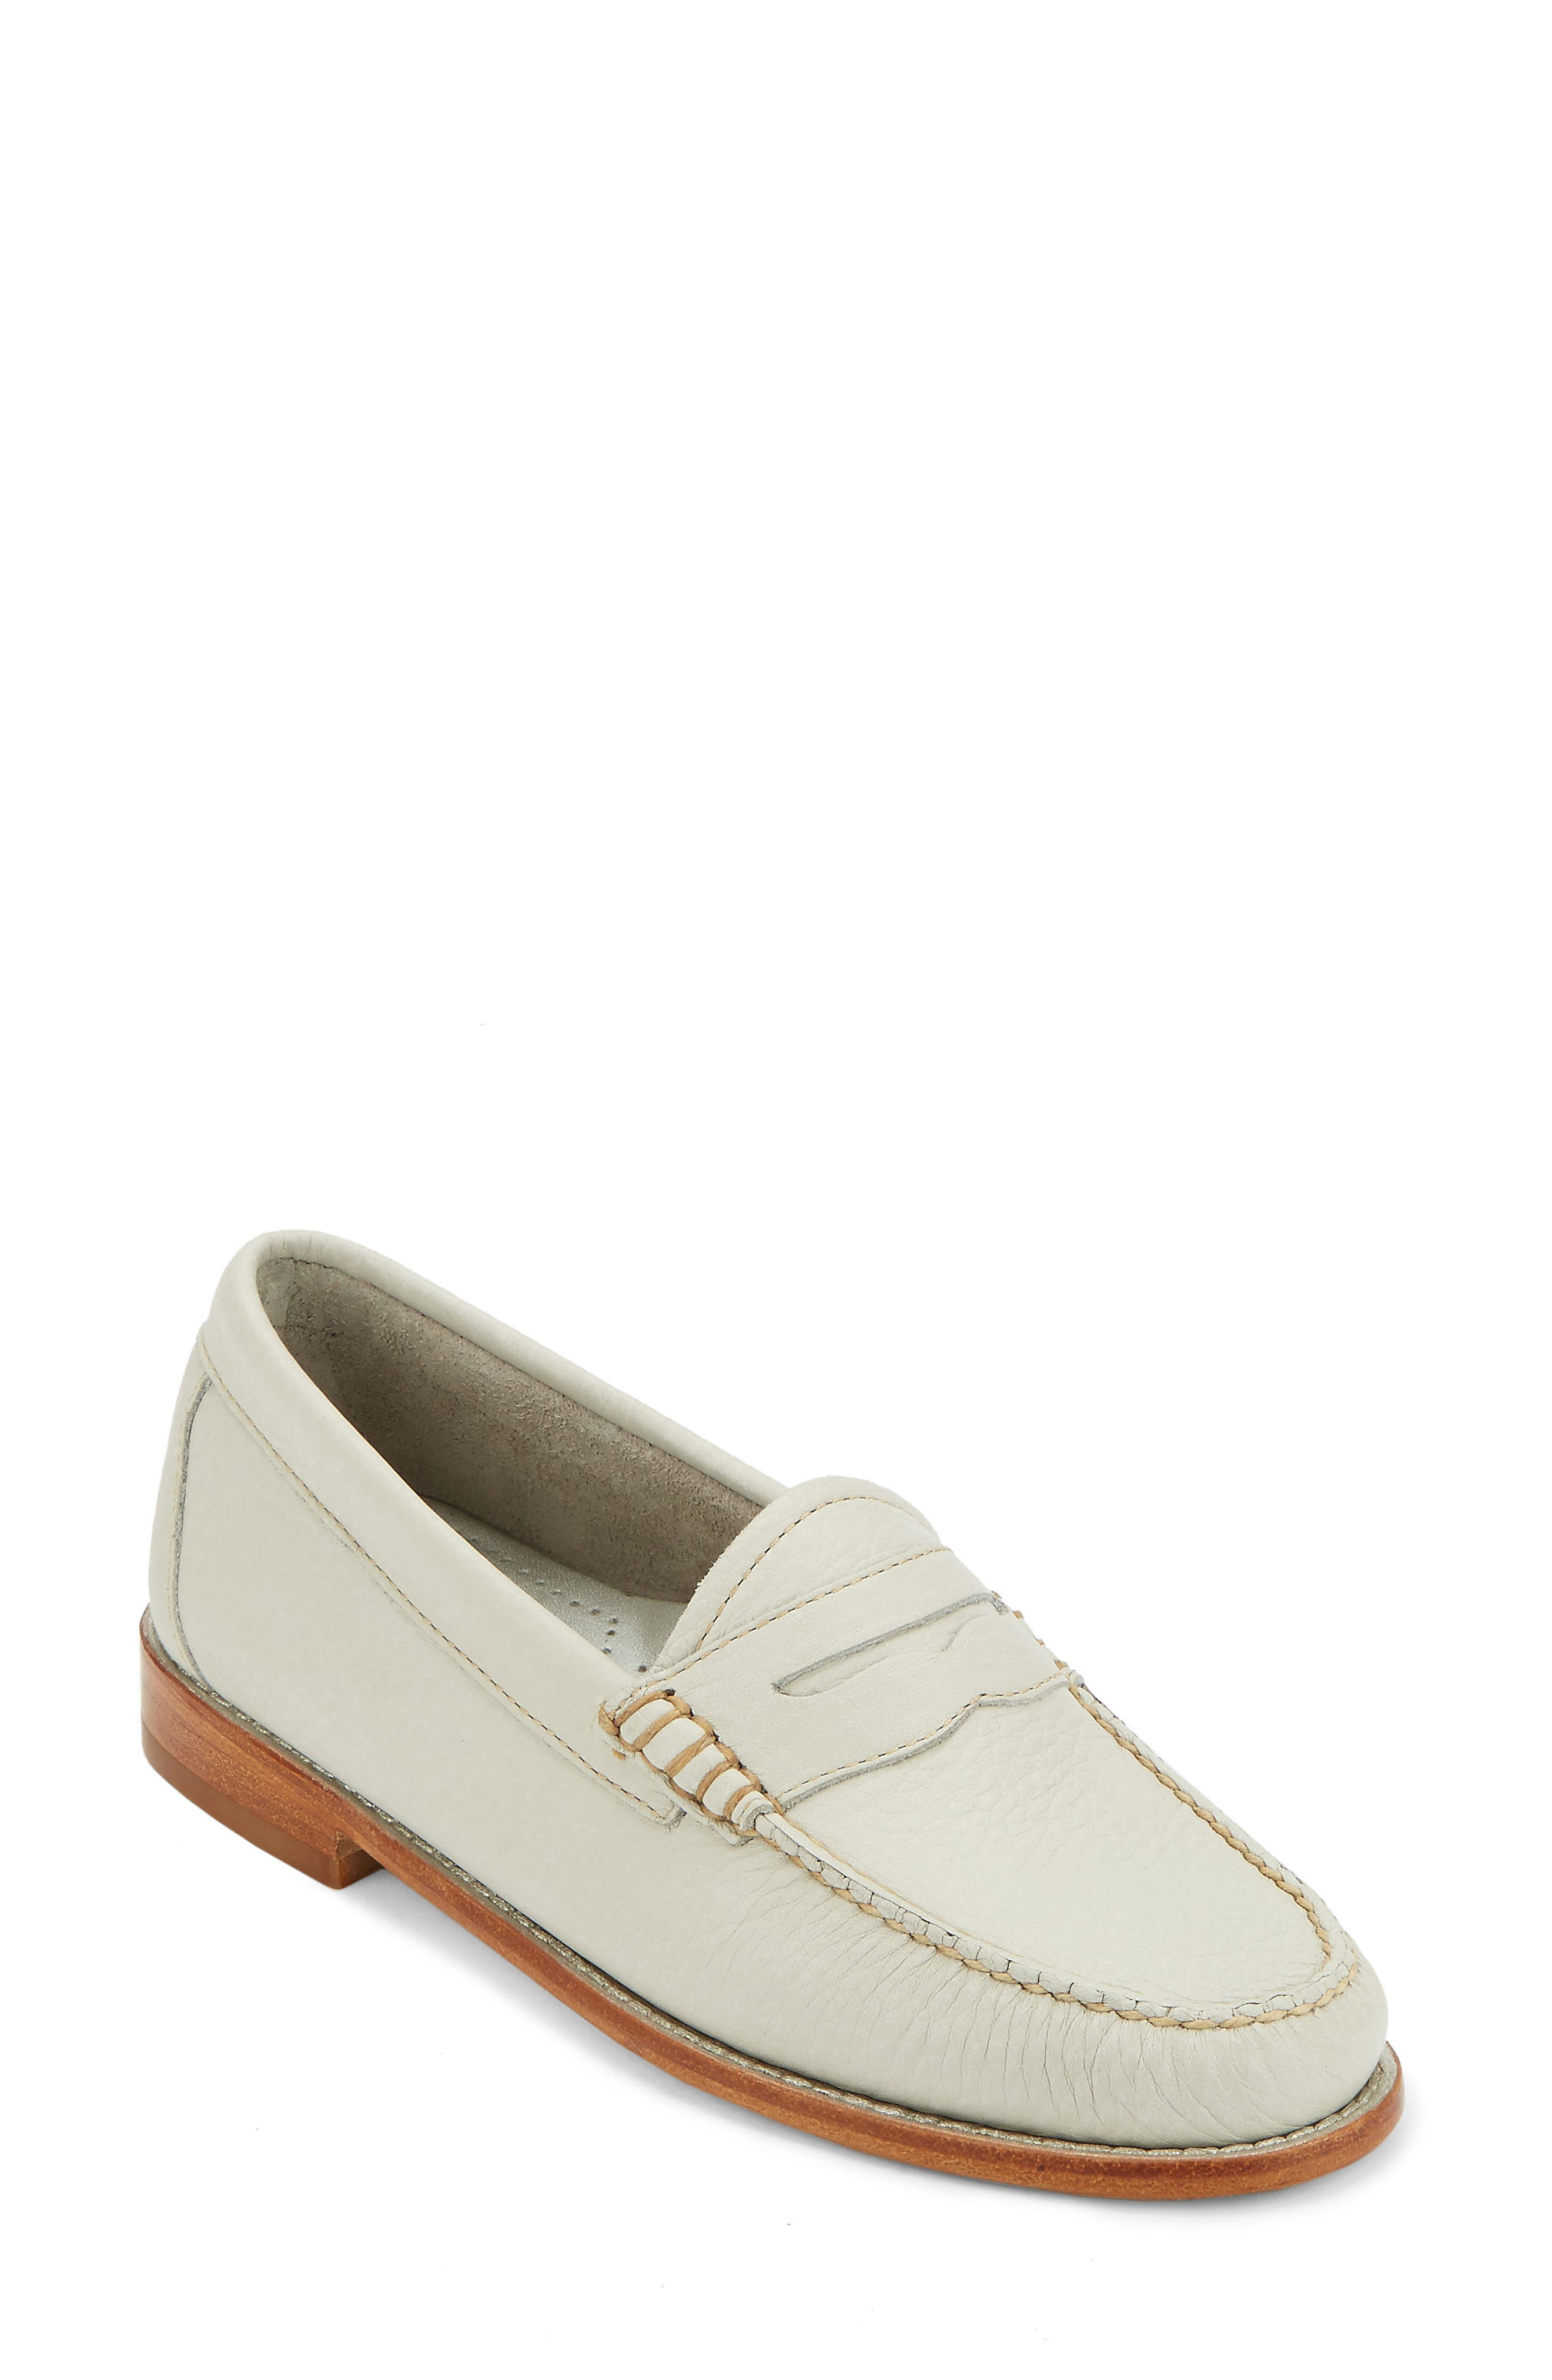 'Whitney' Loafer,                             Main thumbnail 25, color,